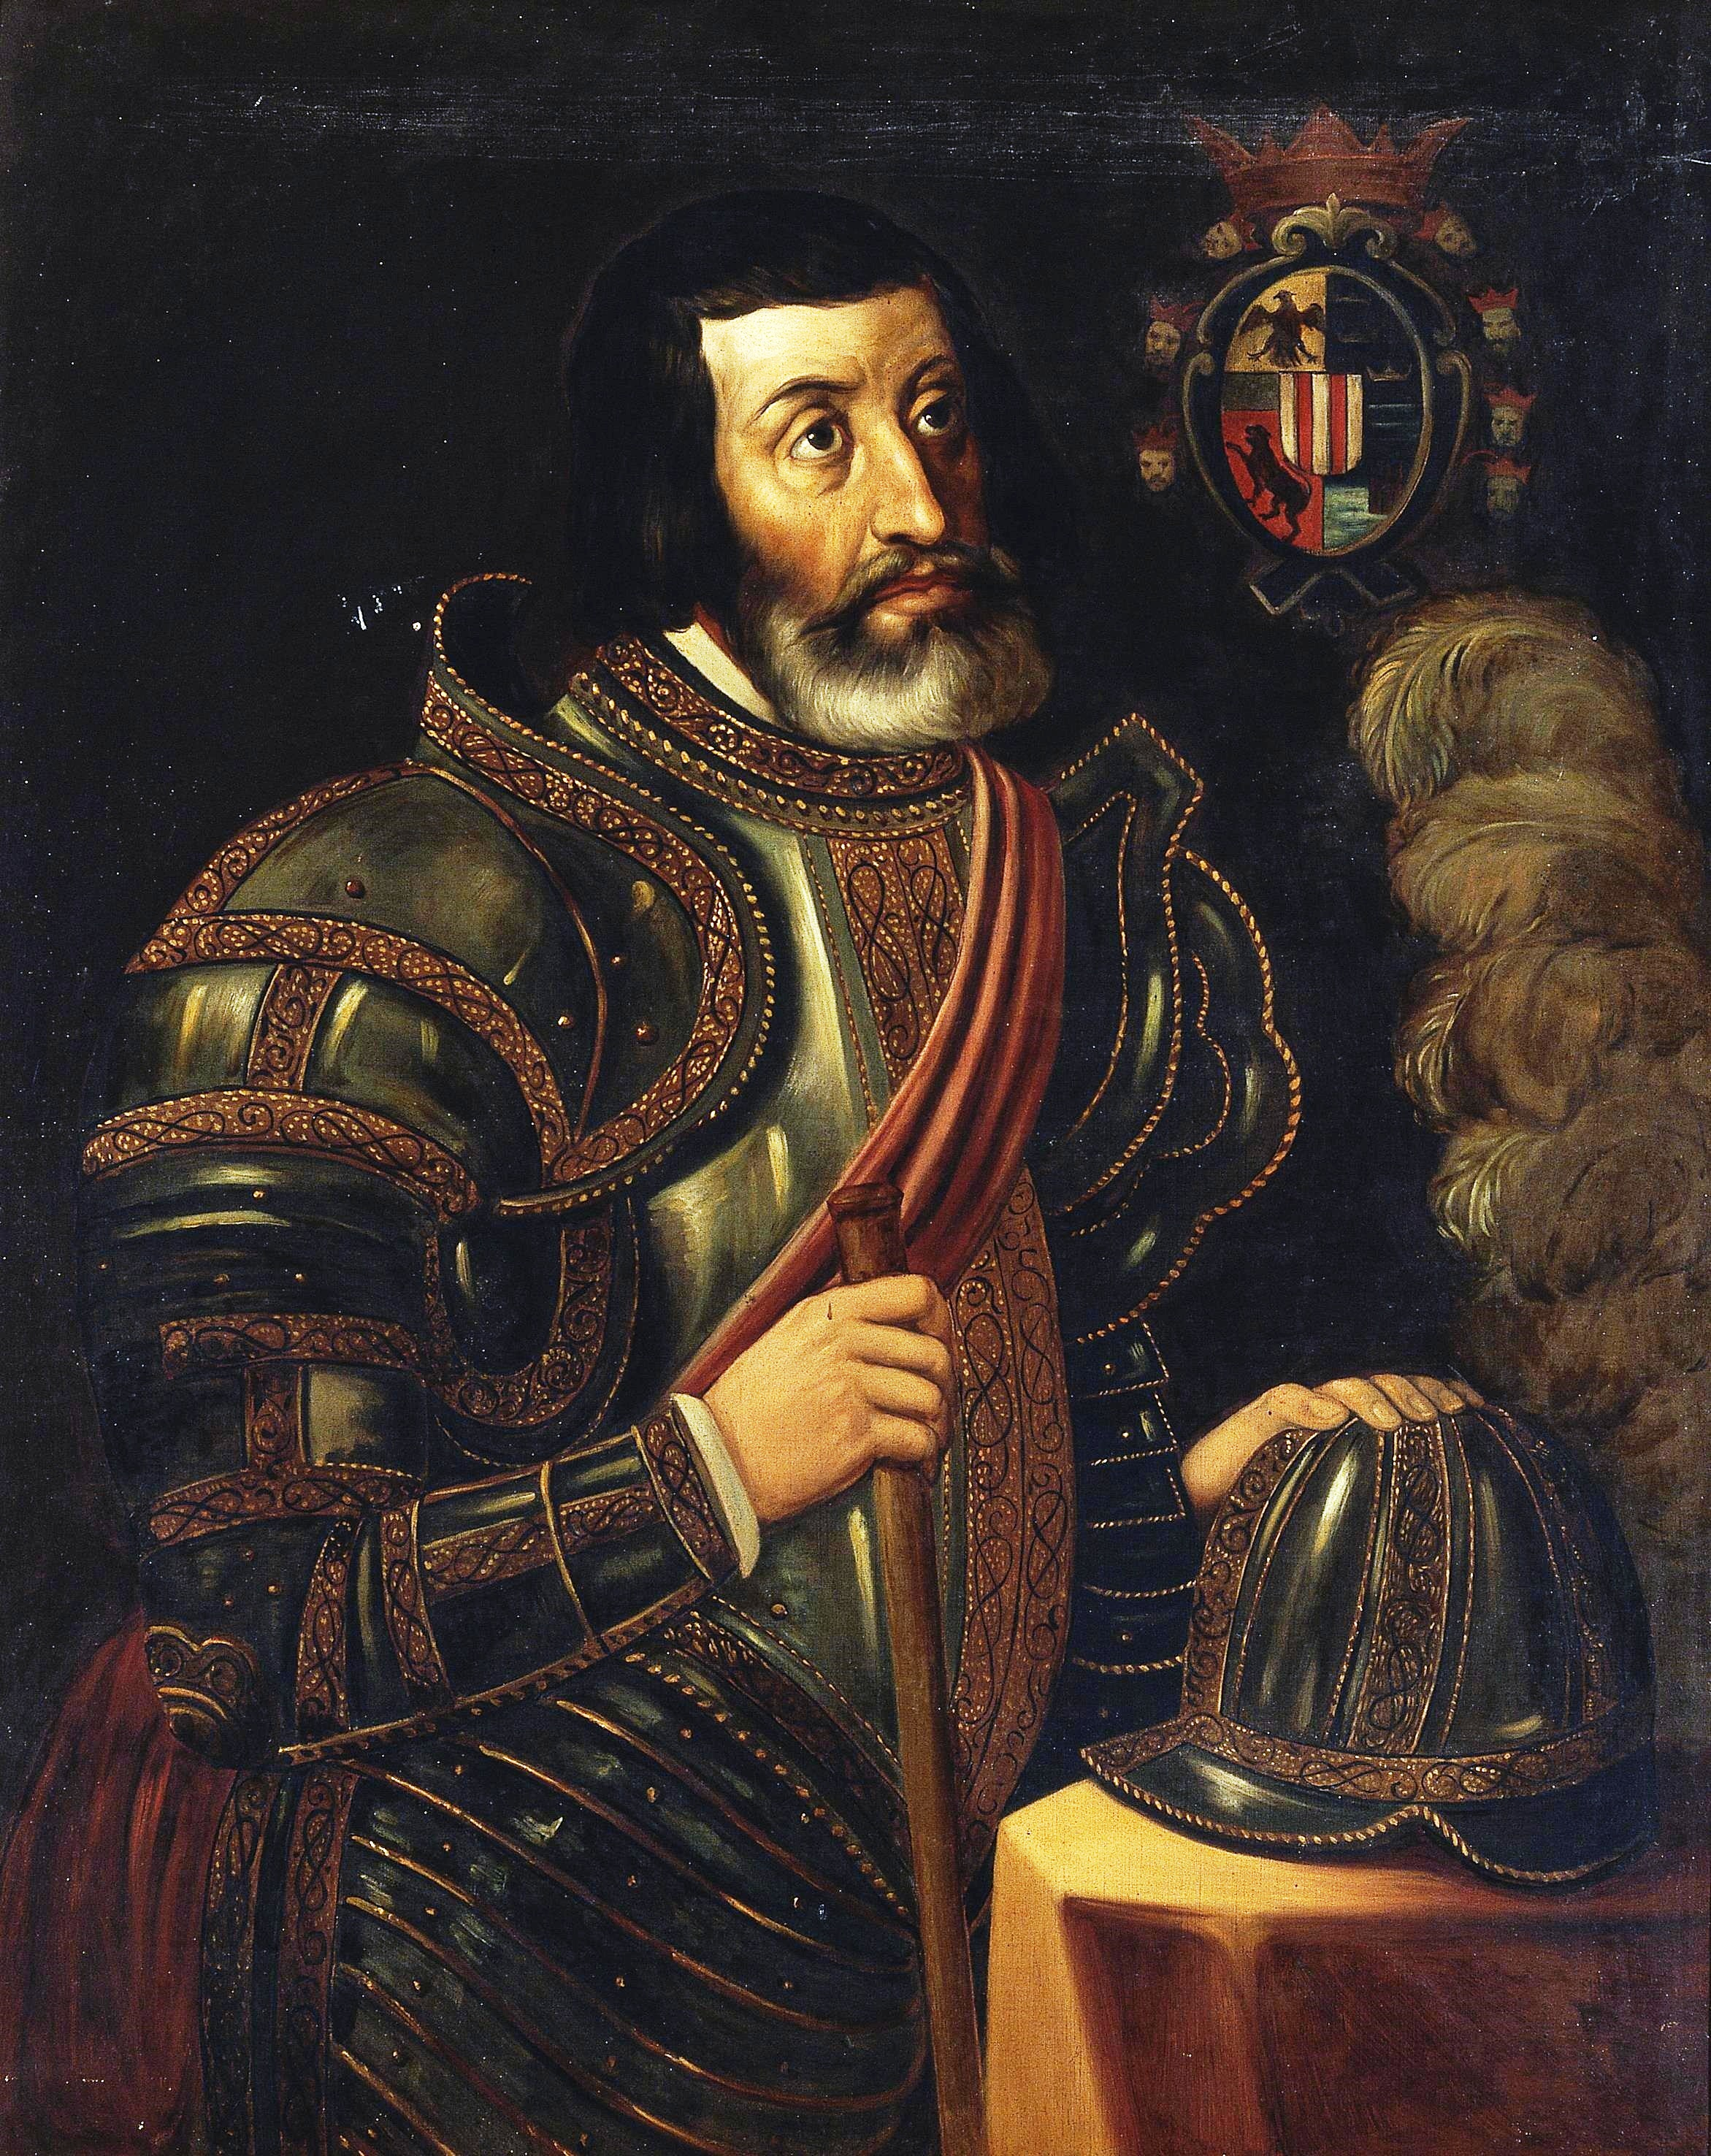 hernan cortes 13, 1521, spanish conquistador hernán cortés received the surrender of cuauhtémoc, ruler of the aztec people the astonishing handover occurred amid the ruins of tenochtitlan, the shattered capital of a mighty empire whose influence had stretched from the atlantic to the pacific and extended from.